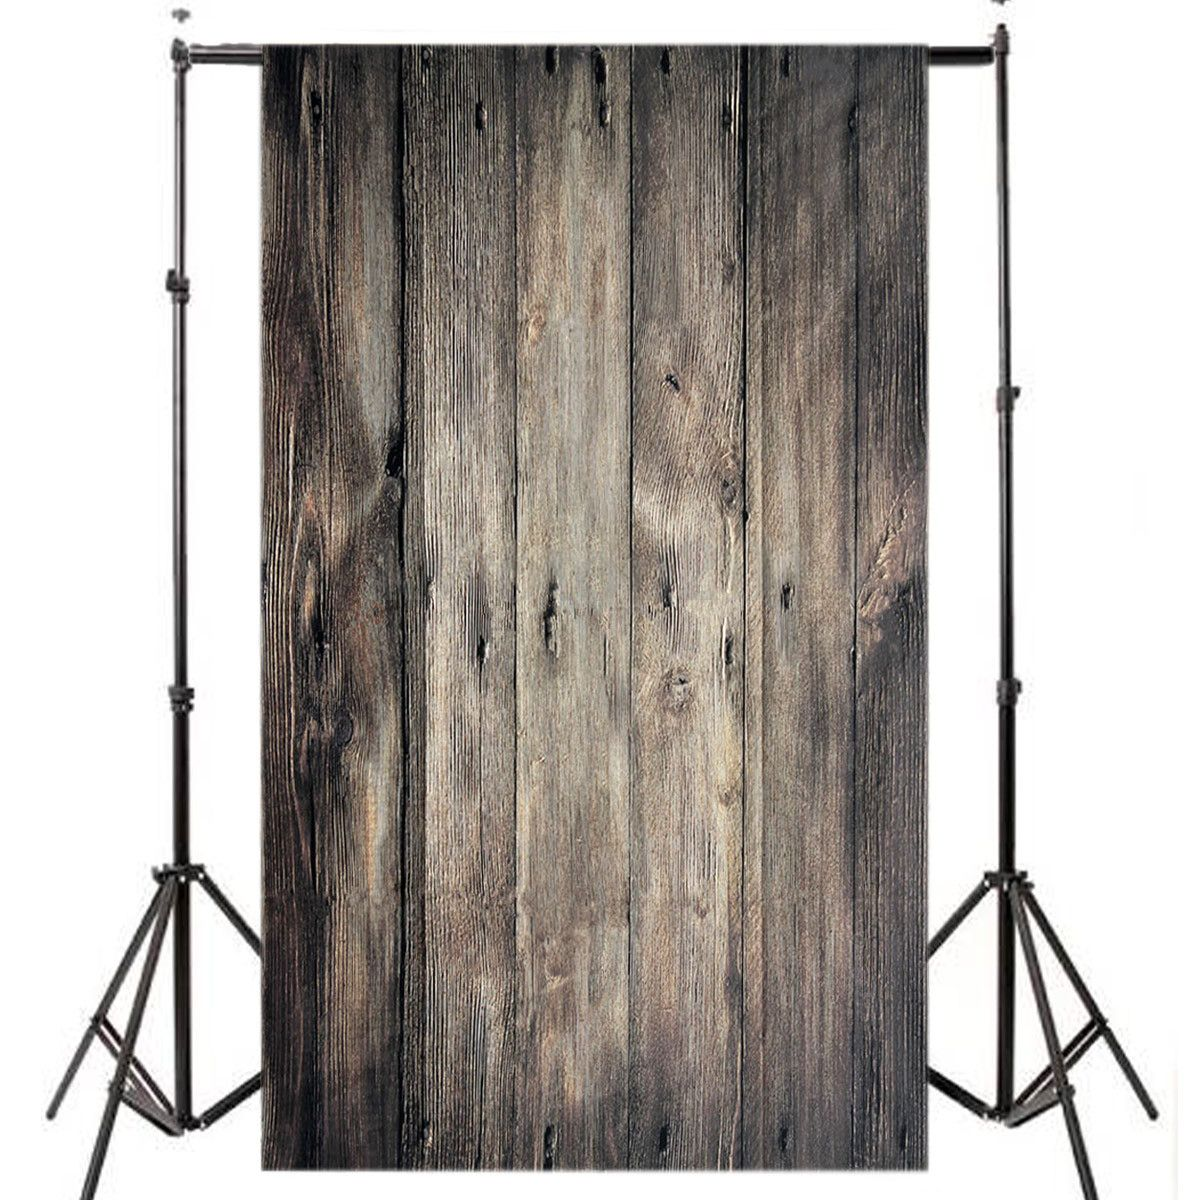 3x5FT Vintage Wooden Plank Wall Floor Costume Wedding Custom Studio Backdrops Photo Background Vinyl New vinyl photo background for baby studio props wooden floor christmas photography backdrops 5x7ft or 3x5ft jiesdx005